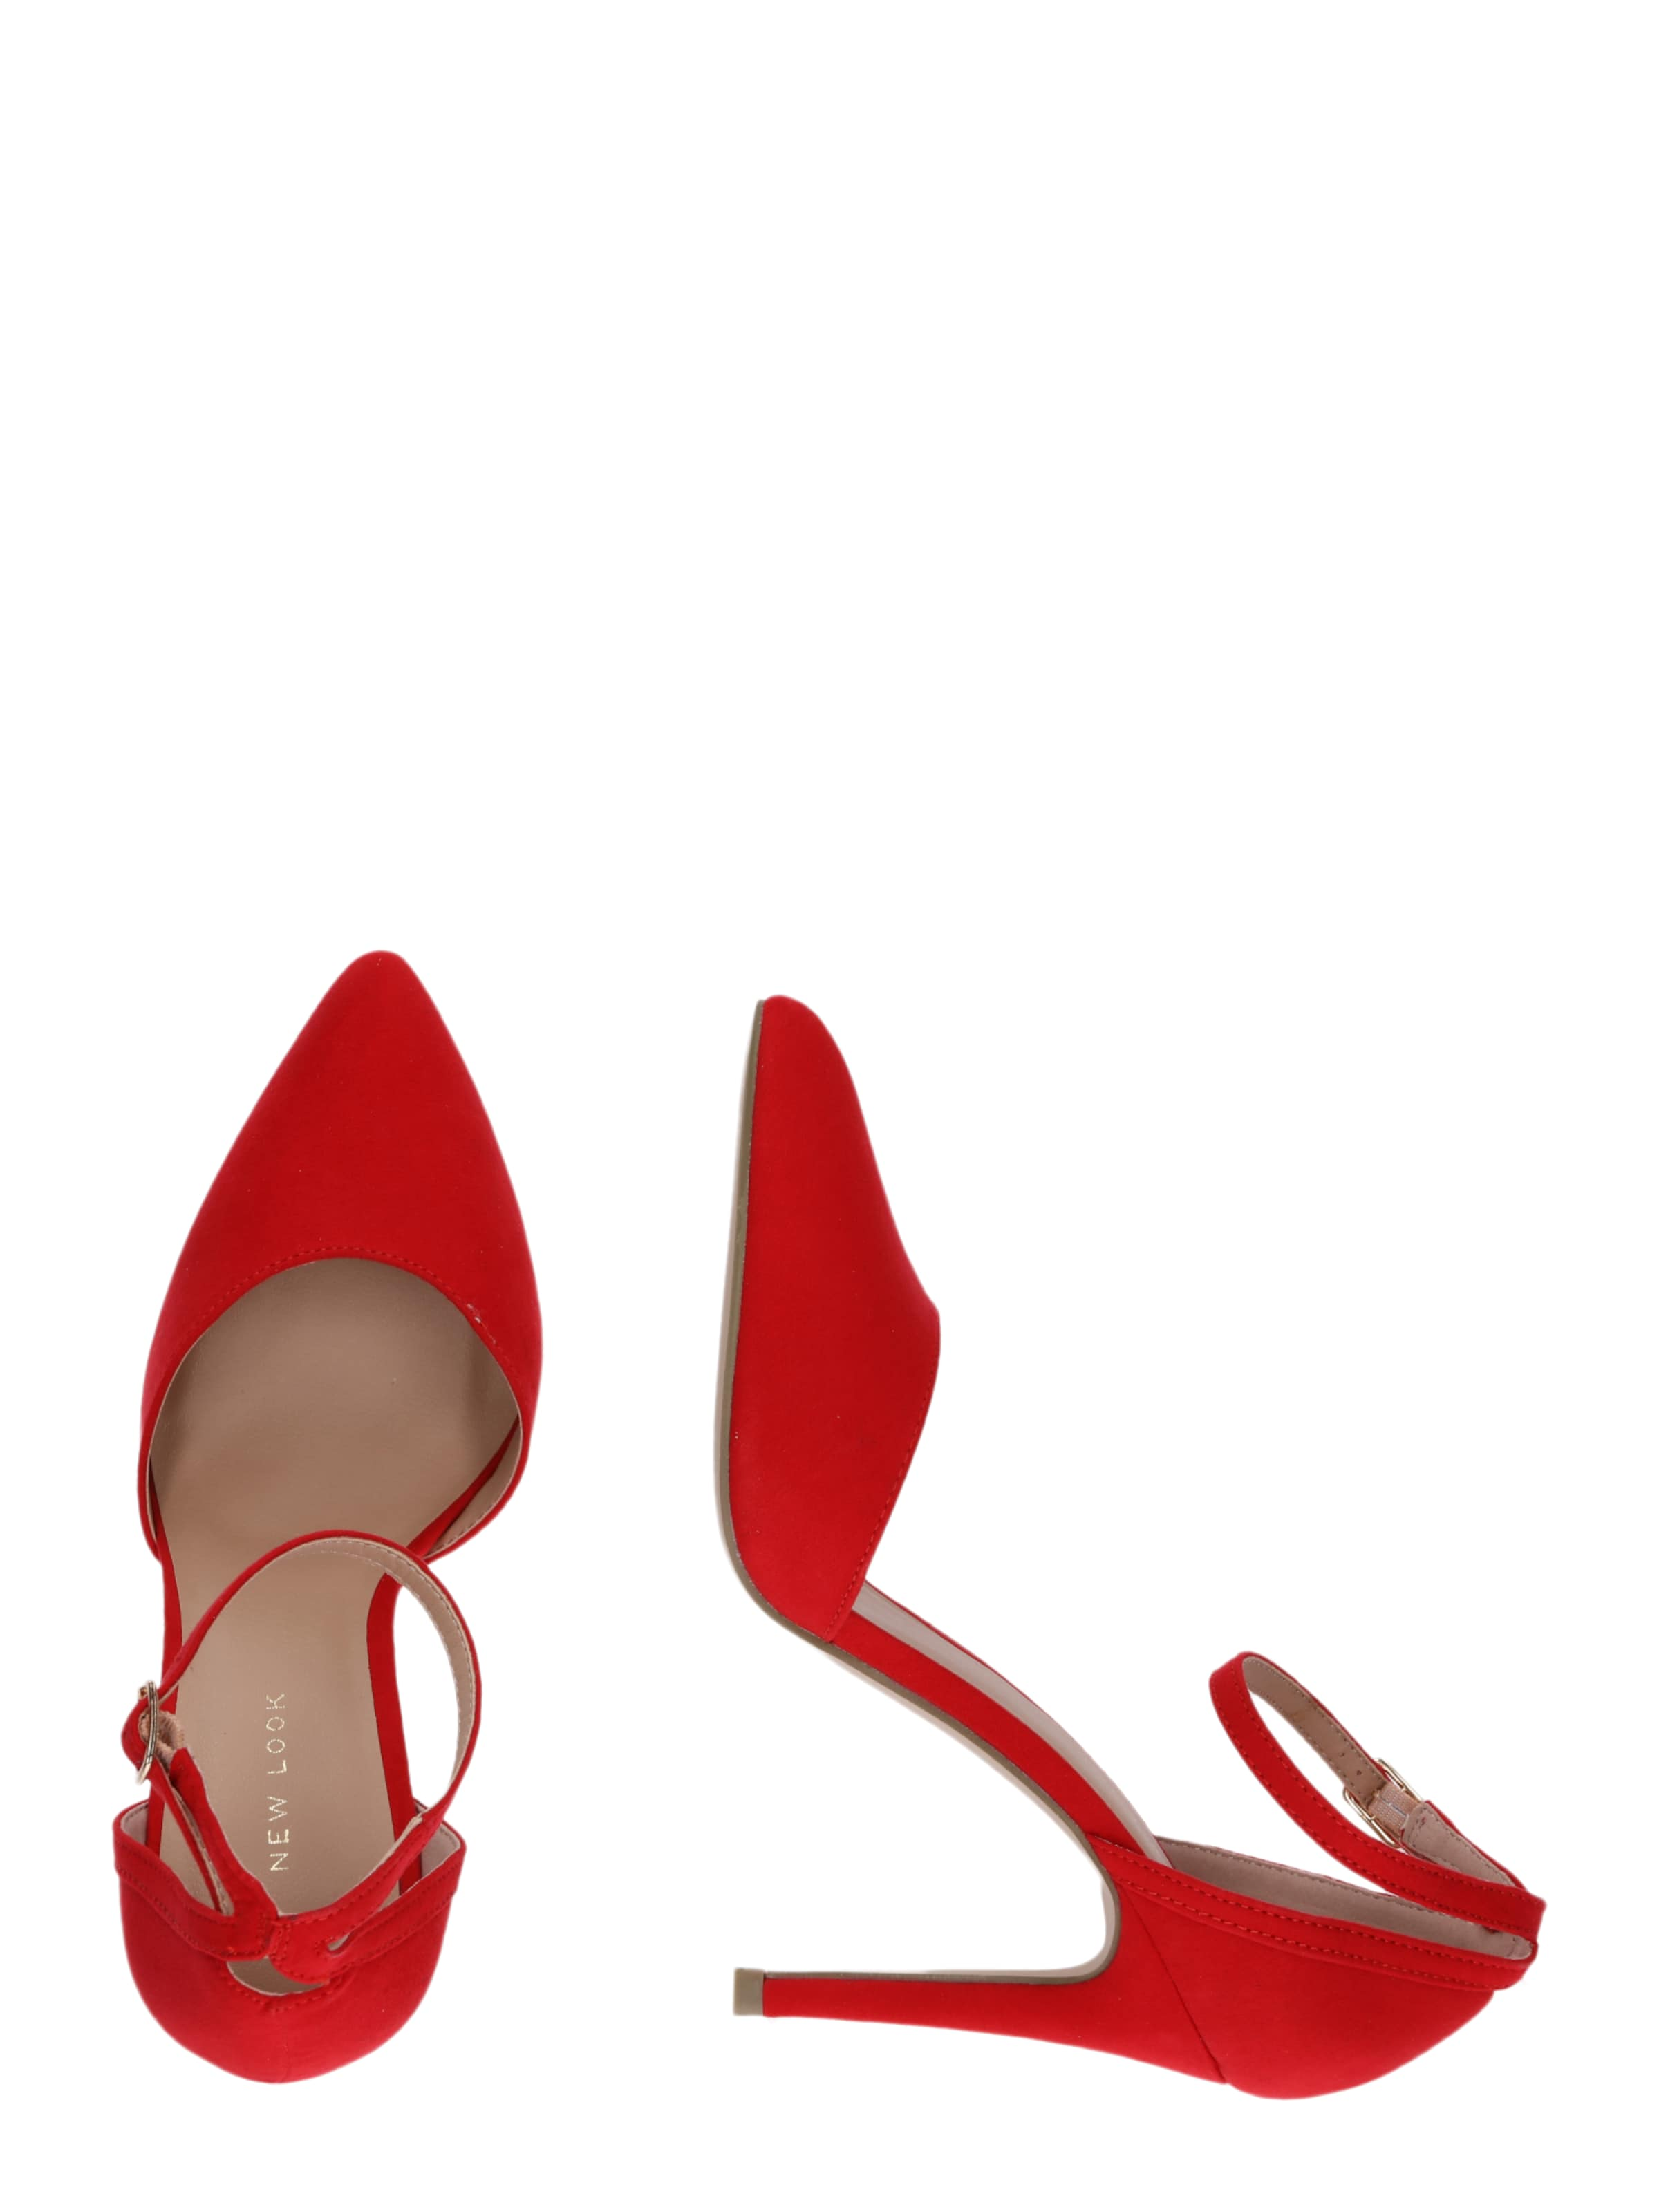 Semper' Escarpins New Rouge 'courts En Look NPymnwvO80